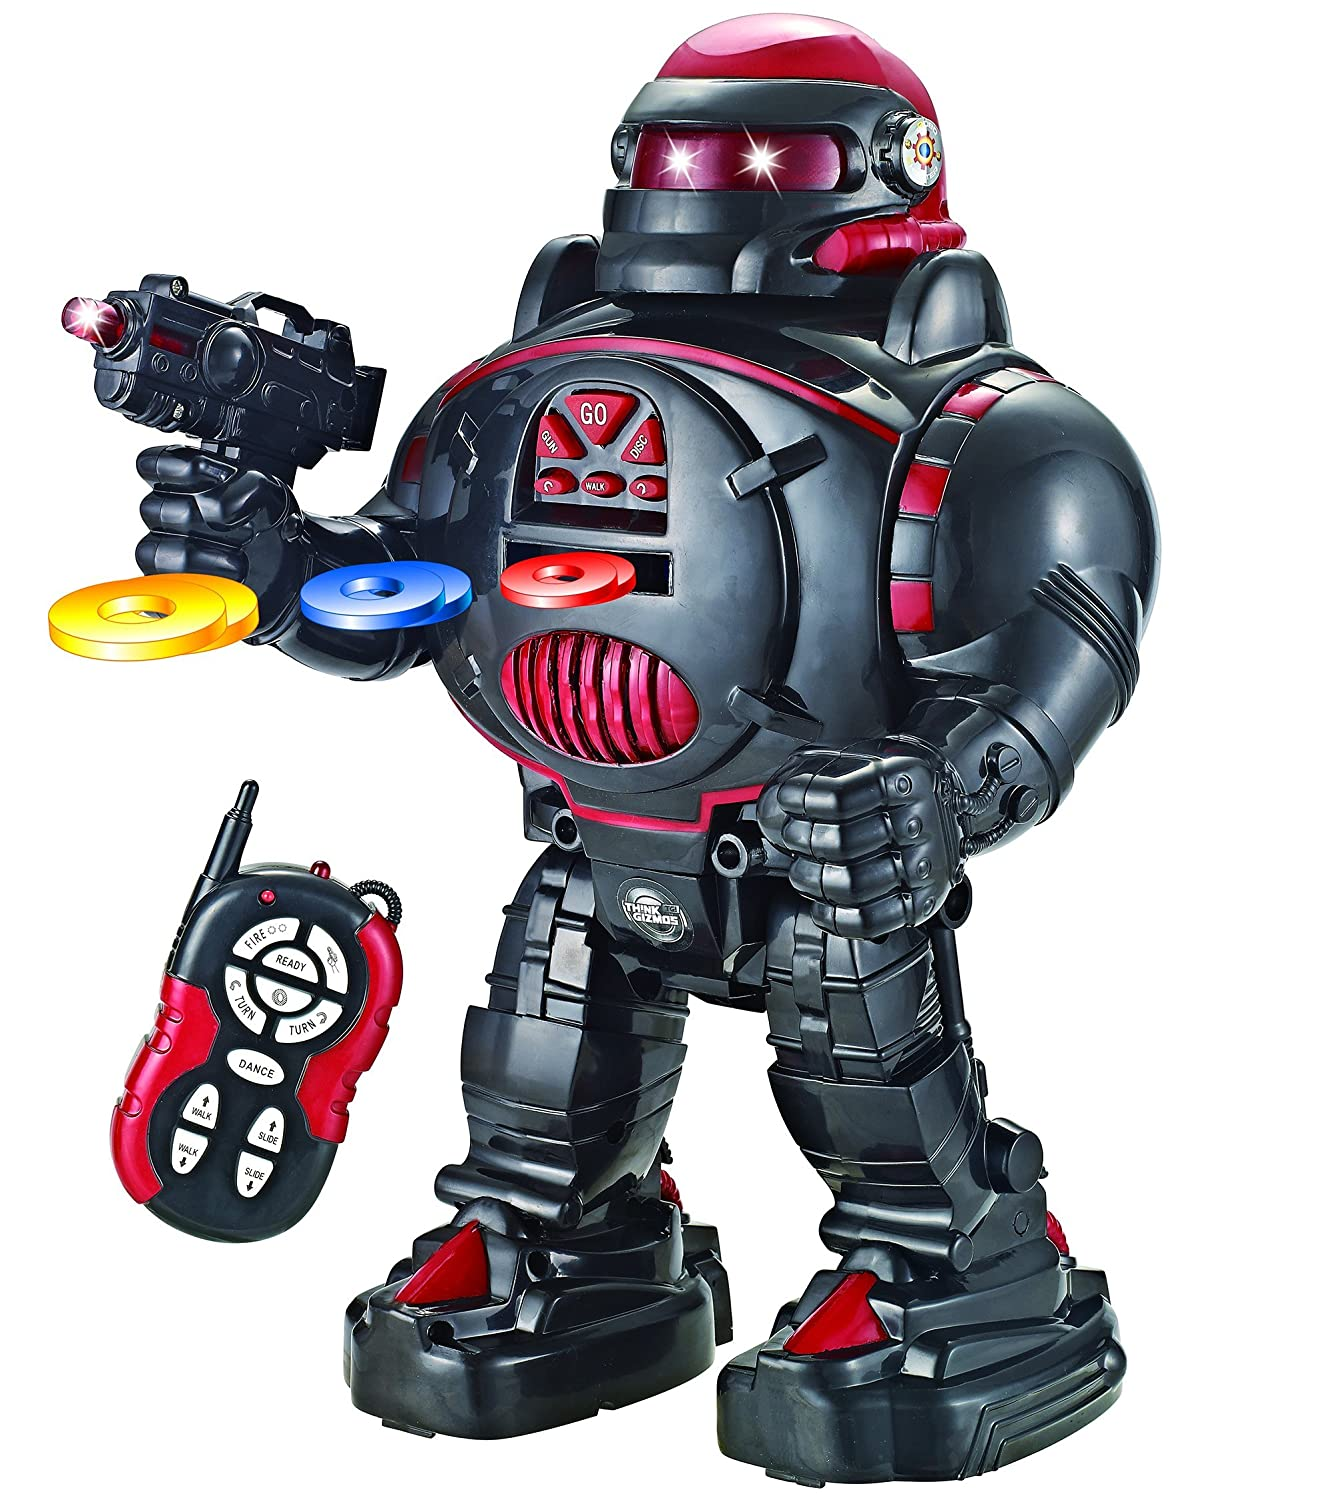 Amazon Remote Control Robot RoboShooter Black & Red Robot